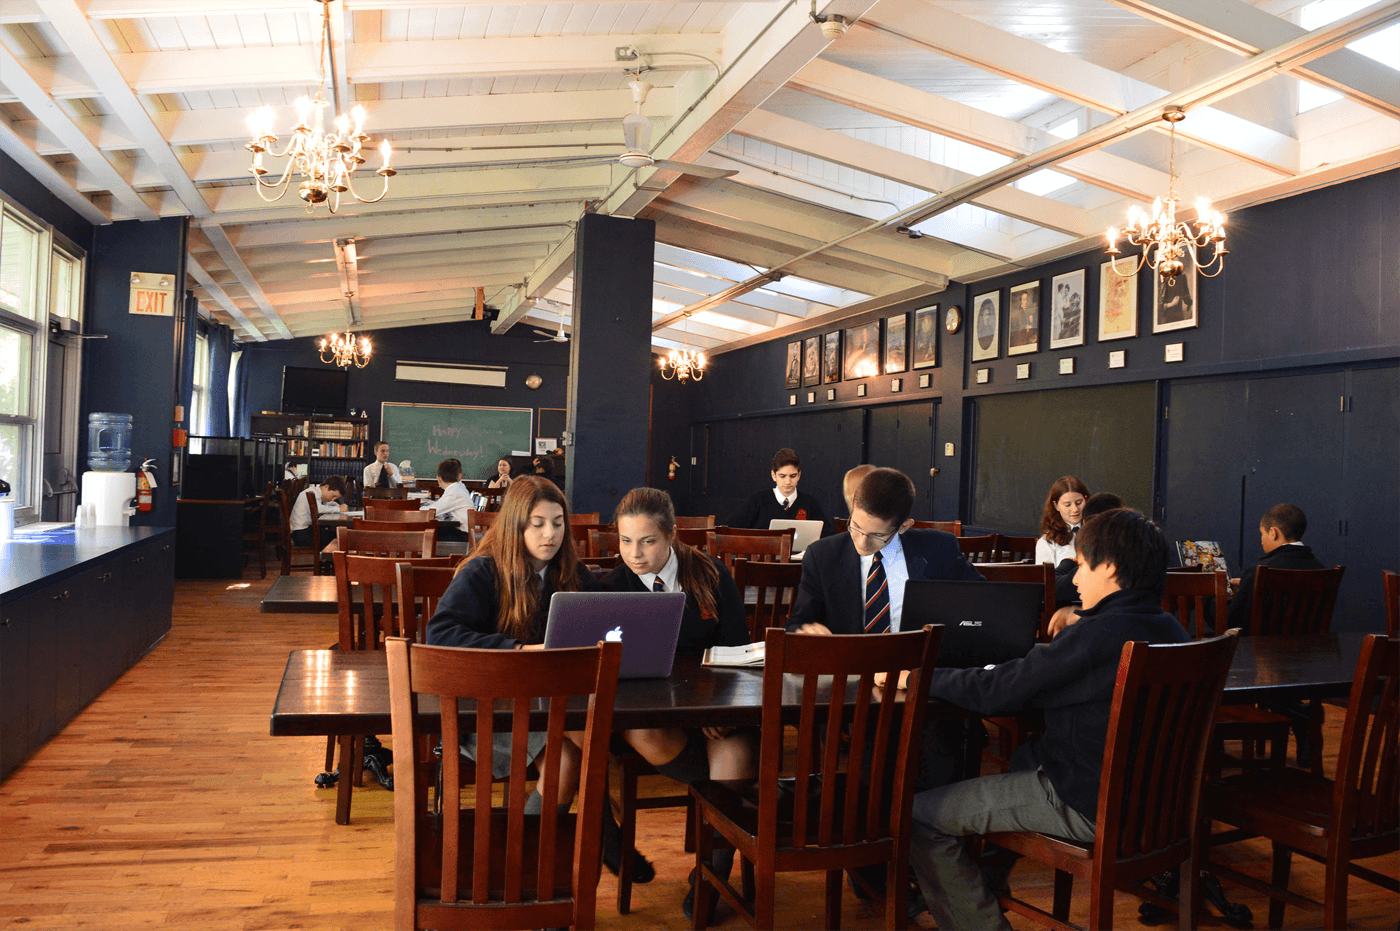 students studying together in the dining hall at King's College School, a private school serving students in the Caledon, Brampton, Orangeville and Bolton areas